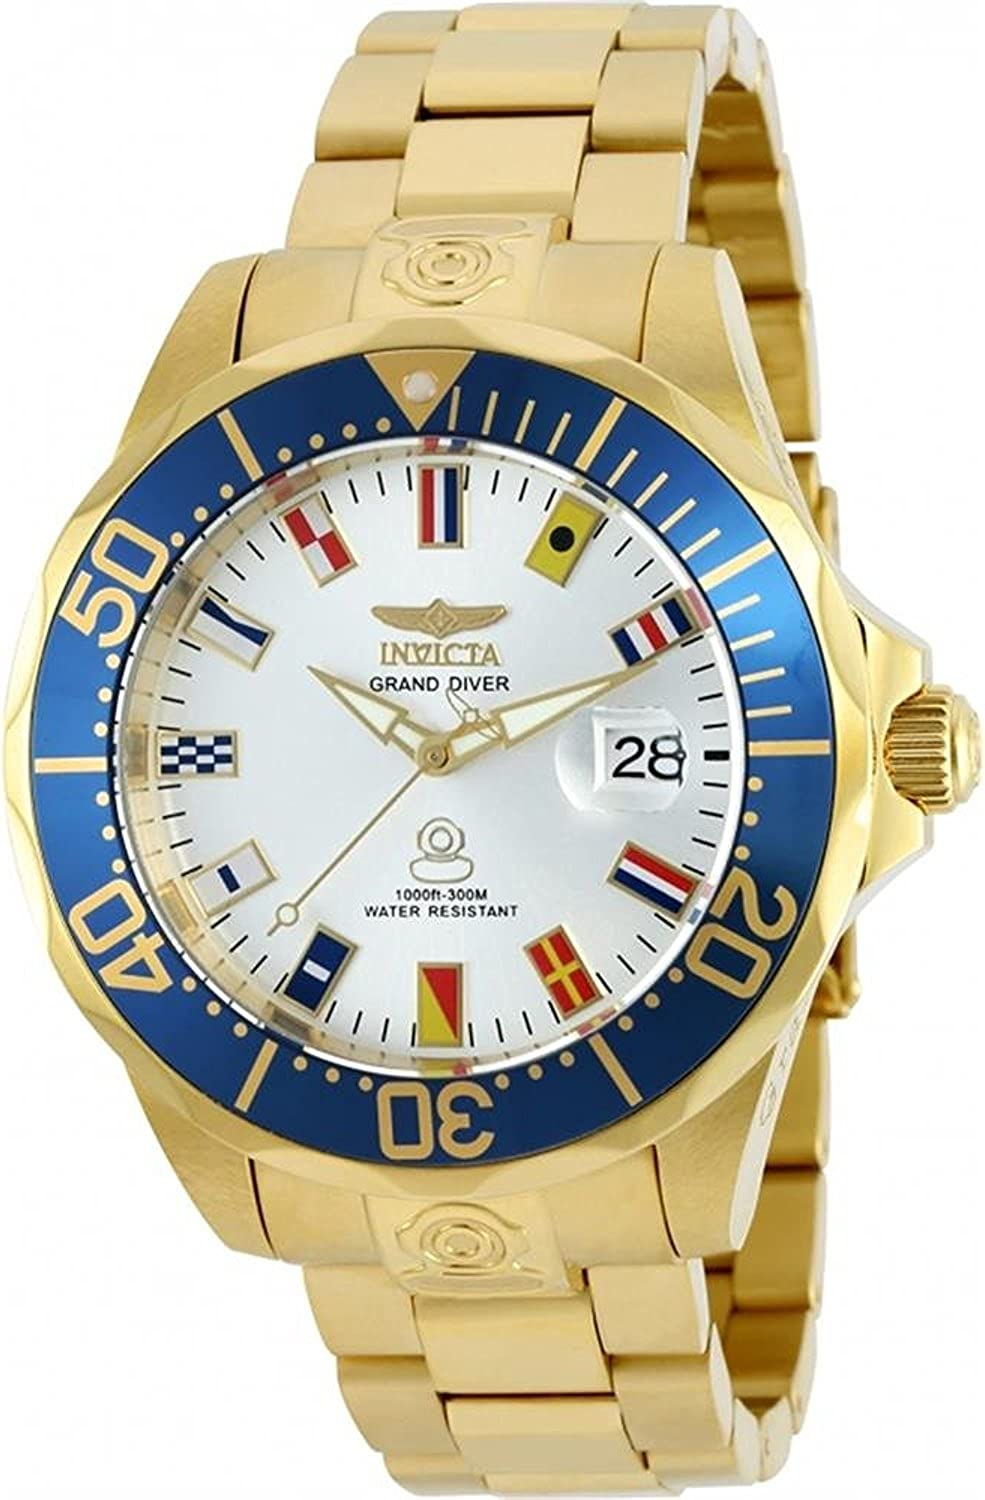 [インヴィクタ]Invicta 腕時計 Grand Pro Diver 47mm International Automatic Gold Stainless Steel 21325 メンズ [並行輸入品]